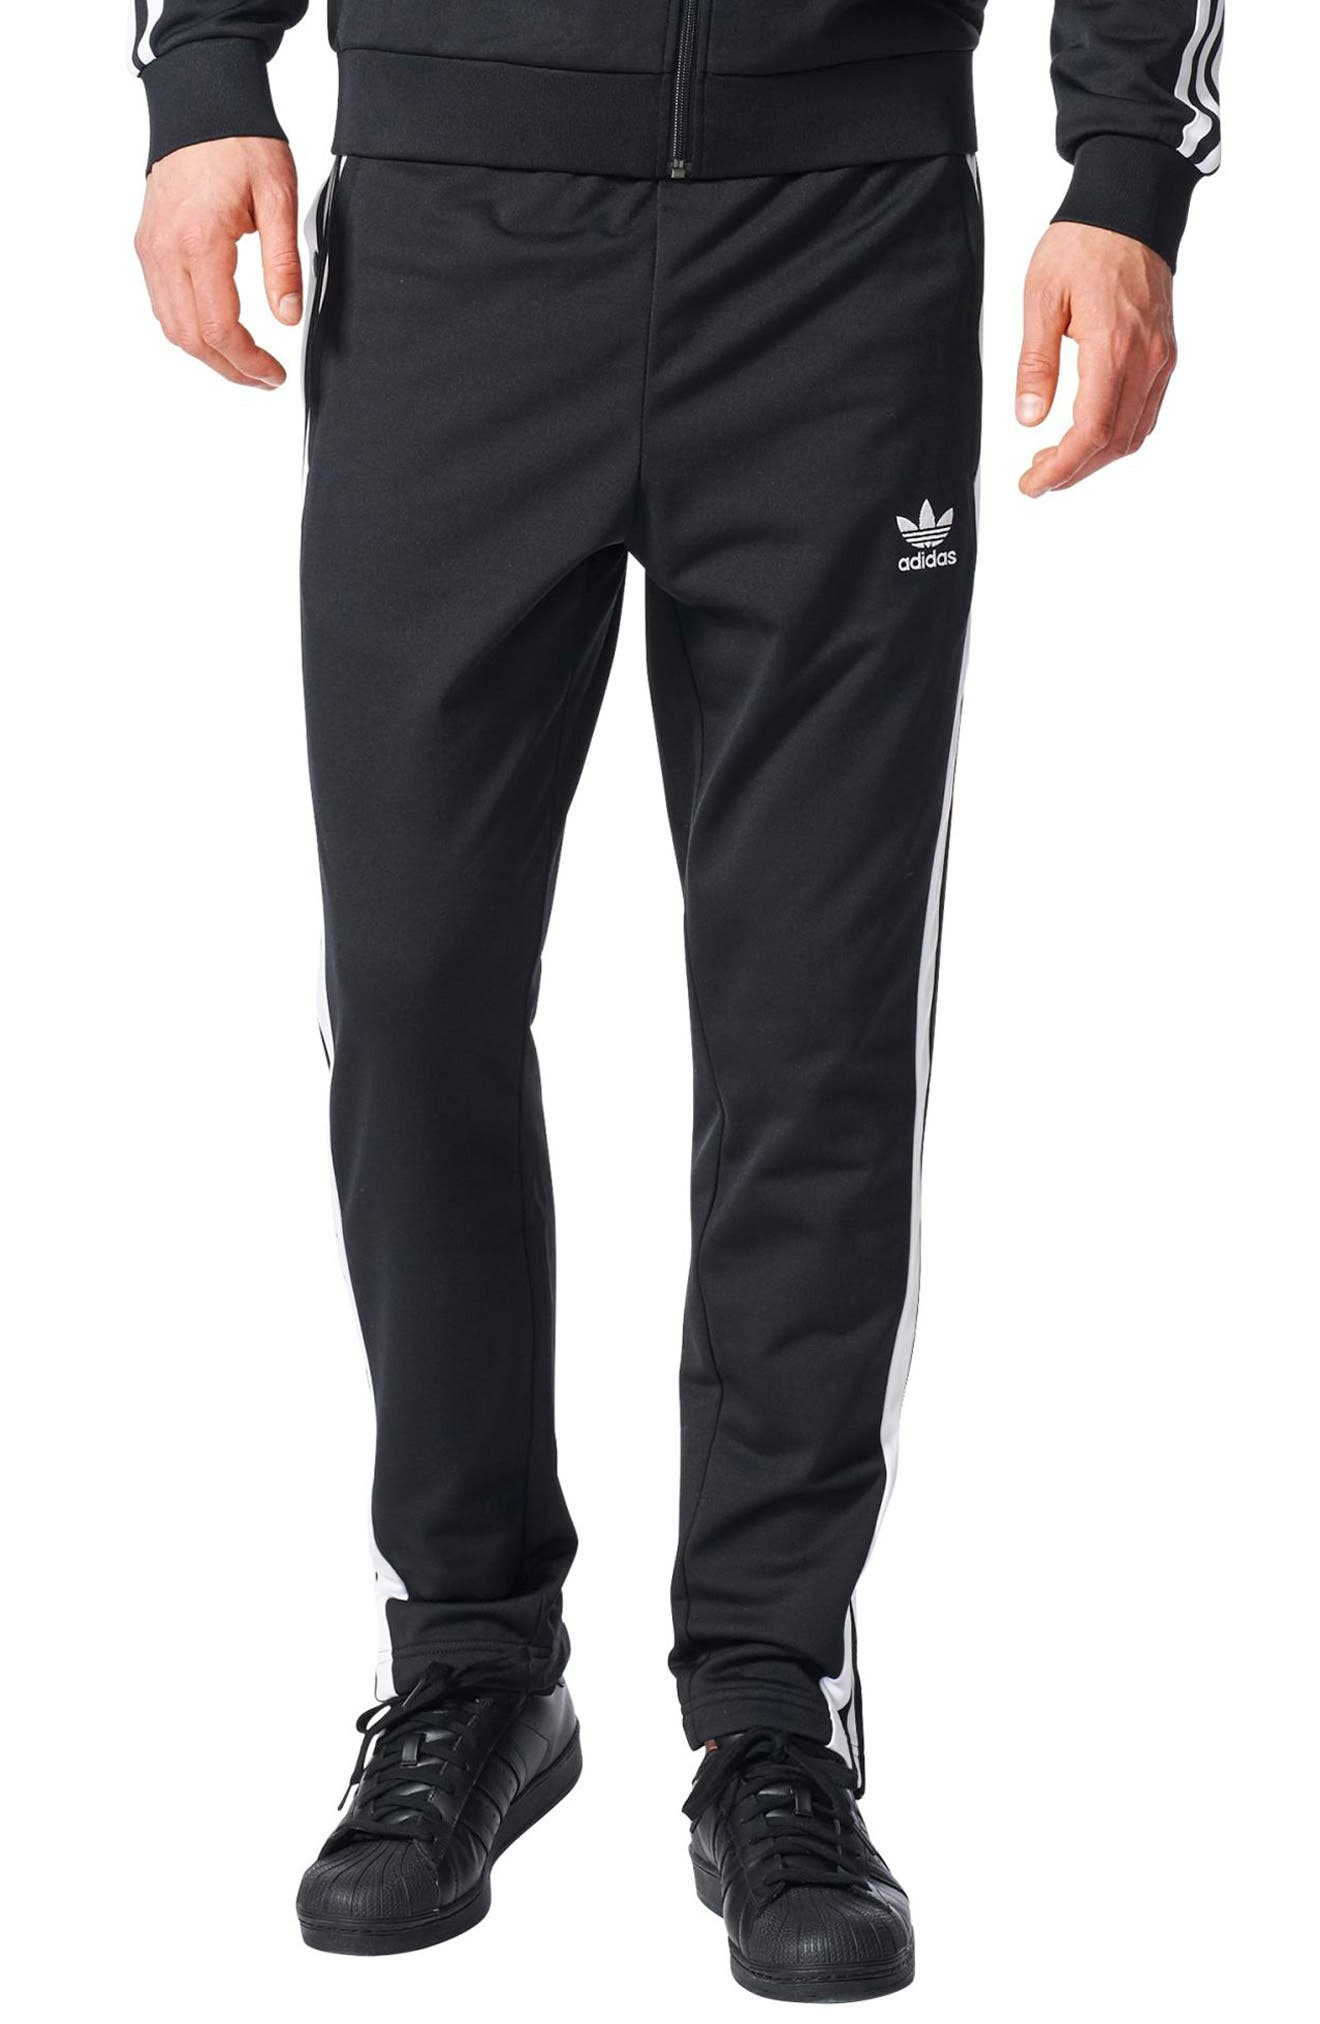 adidas Originals Adibreak Tearaway Track Pants